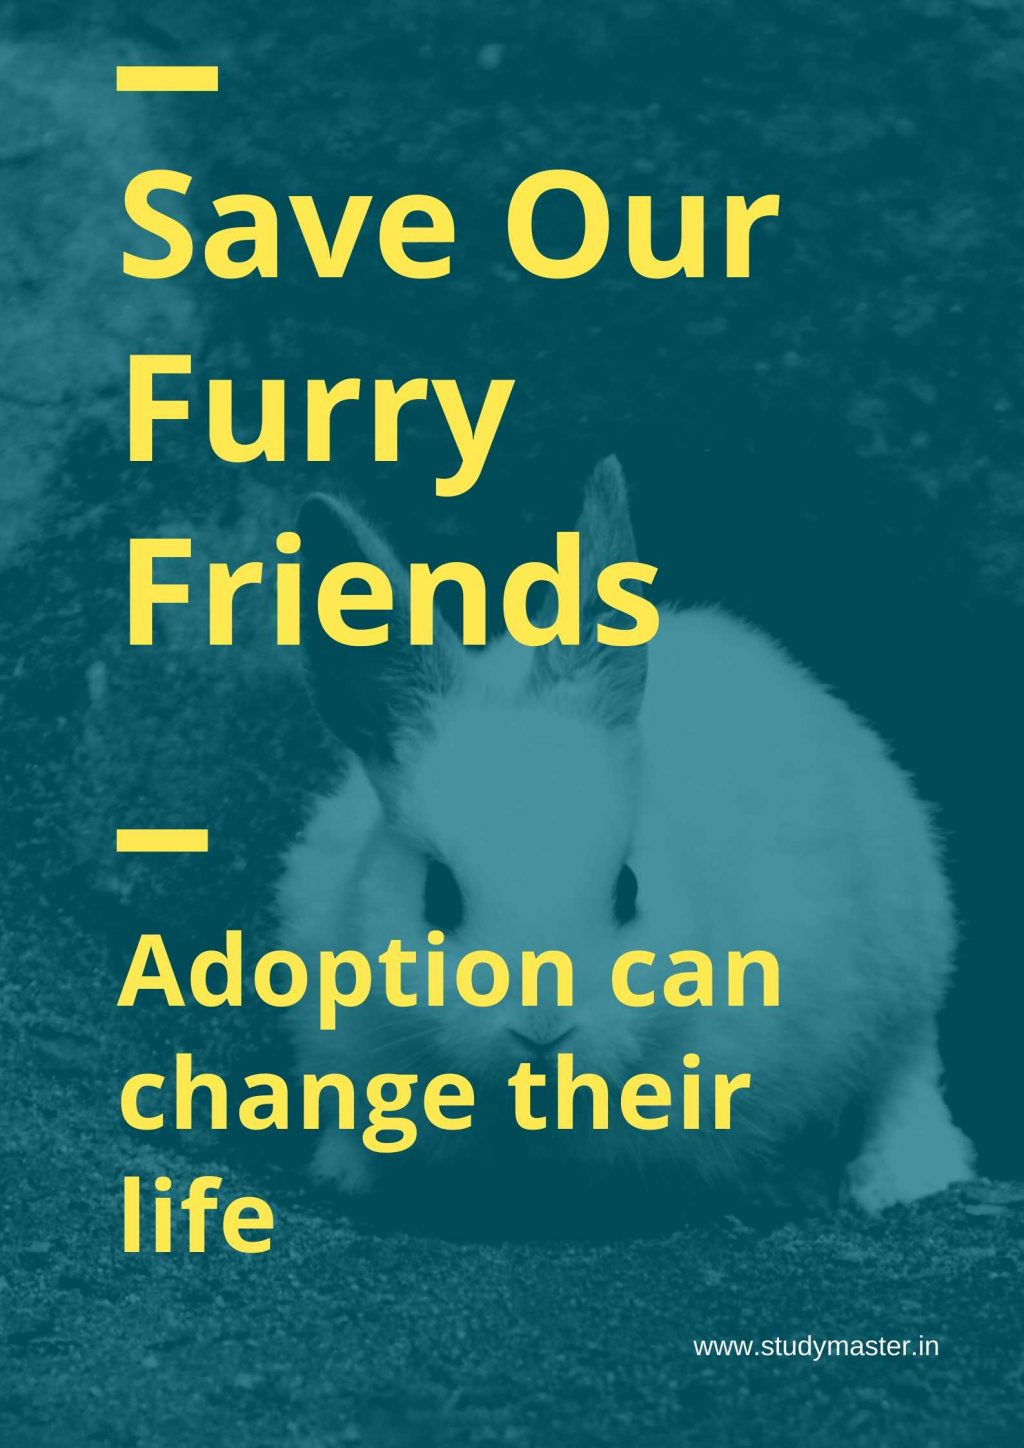 save animals poster with slogan